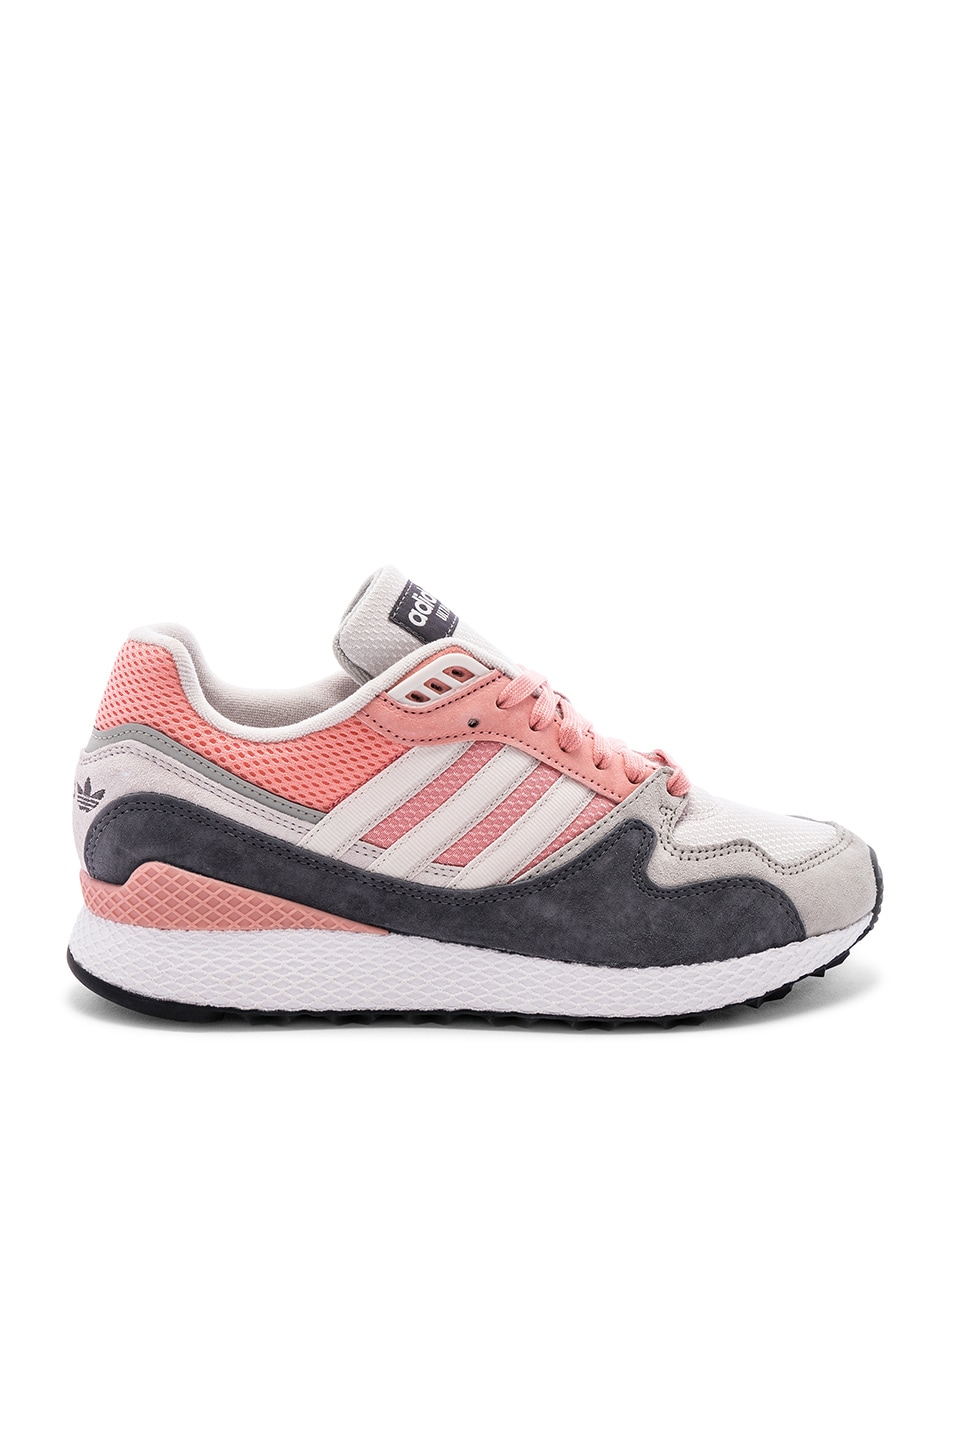 Image 2 of adidas Originals Oregon Ultra Tech in Trace Pink & Crystal White & Black